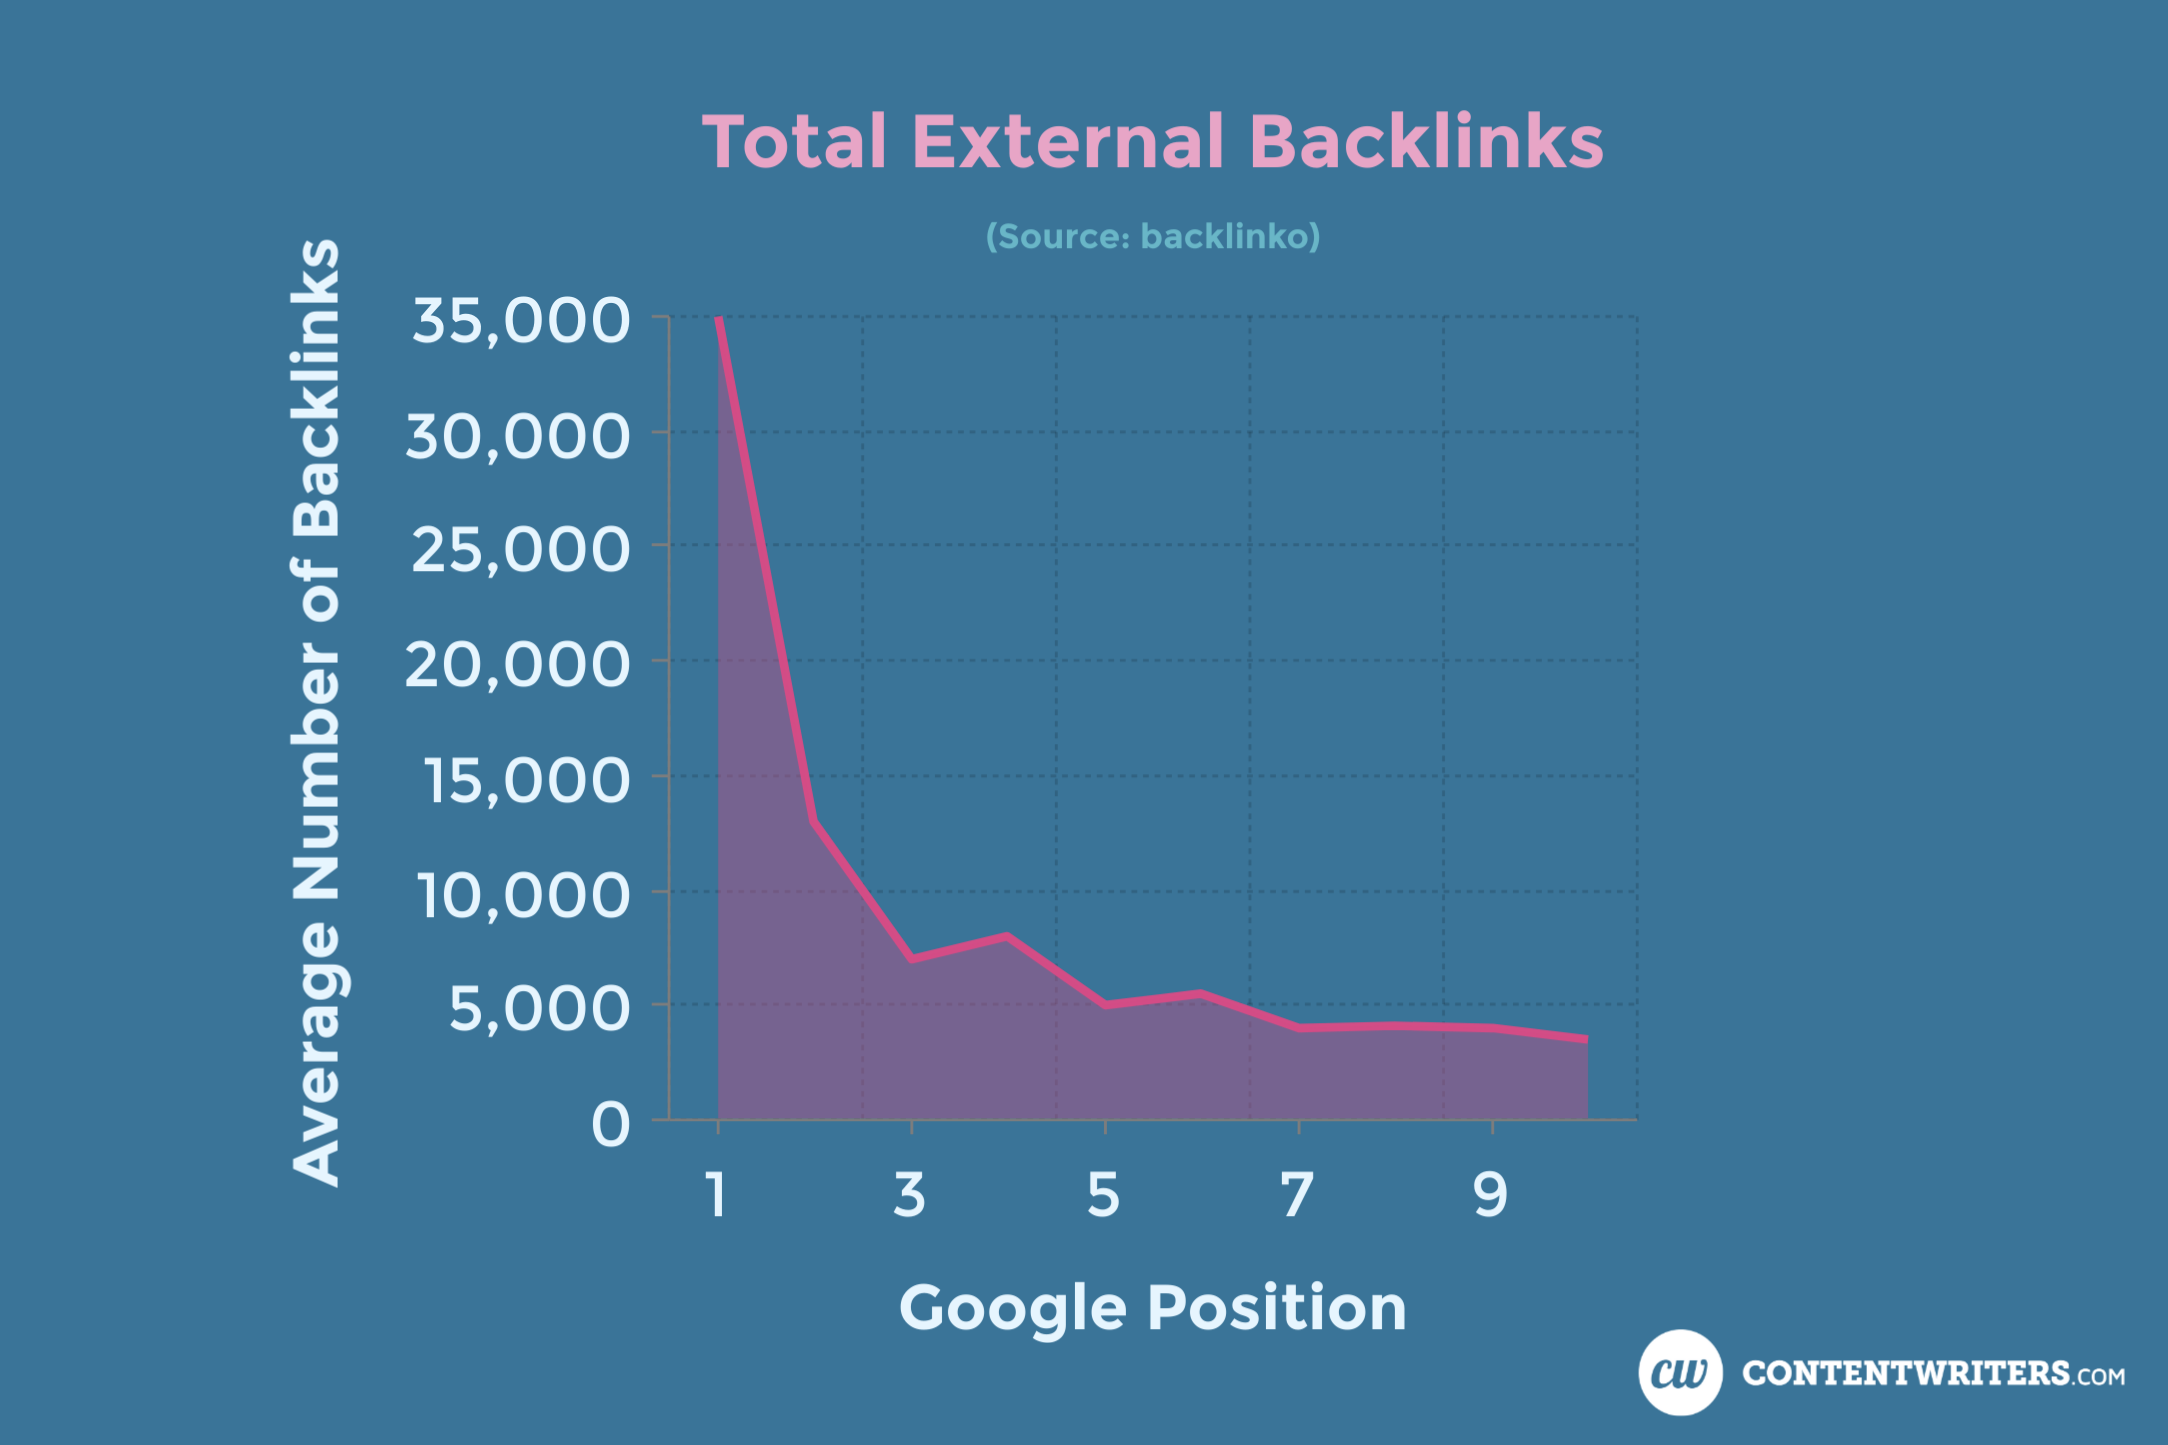 Total External Backlinks ContentWriters